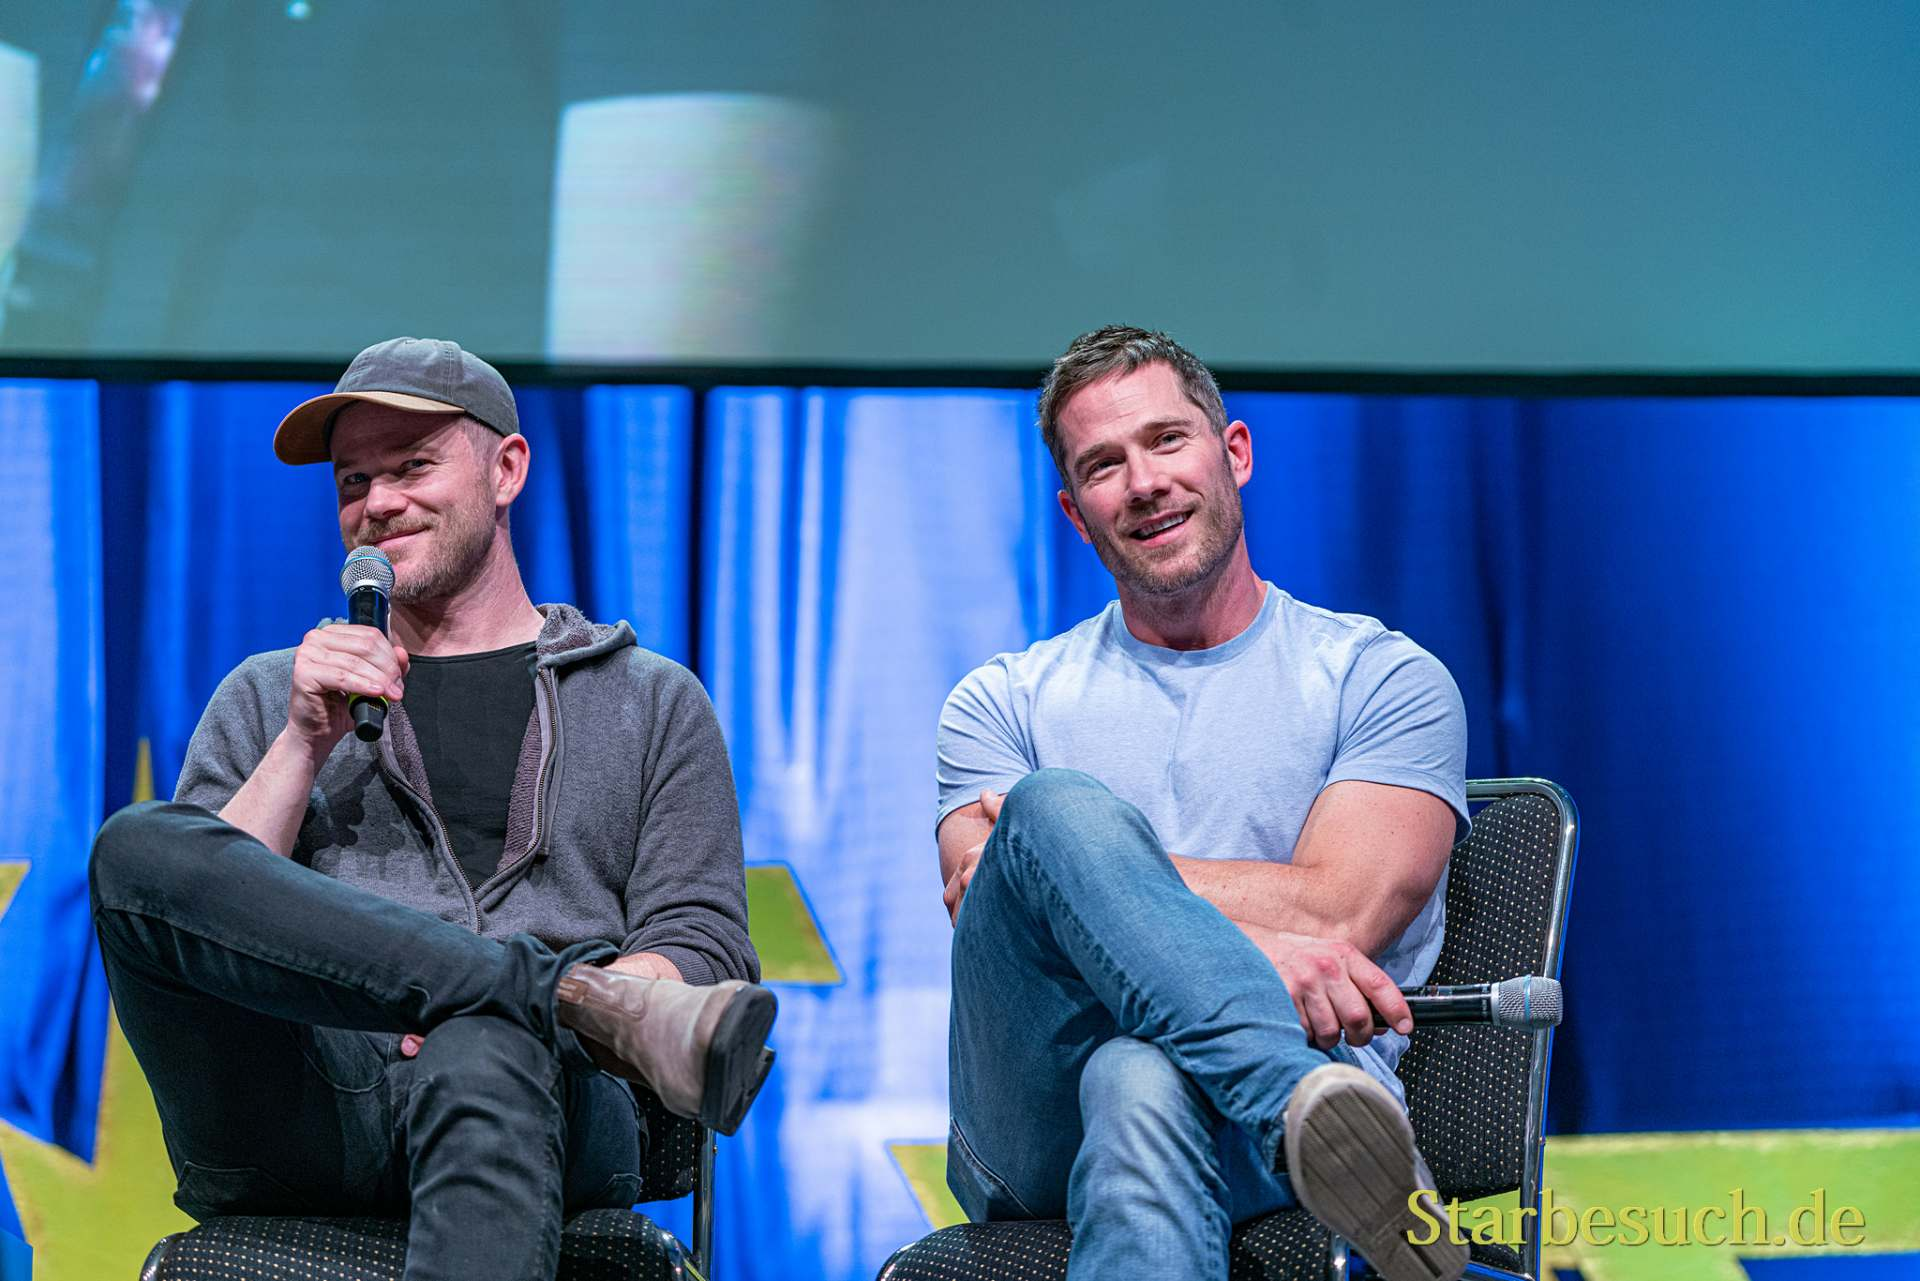 Bonn, Germany - June 8 2019: Luke Macfarlane and Aaron Ashmore talk about their experiences in Killjoys at FedCon 28, a four day sci-fi convention. FedCon 28 took place Jun 7-10 2019.